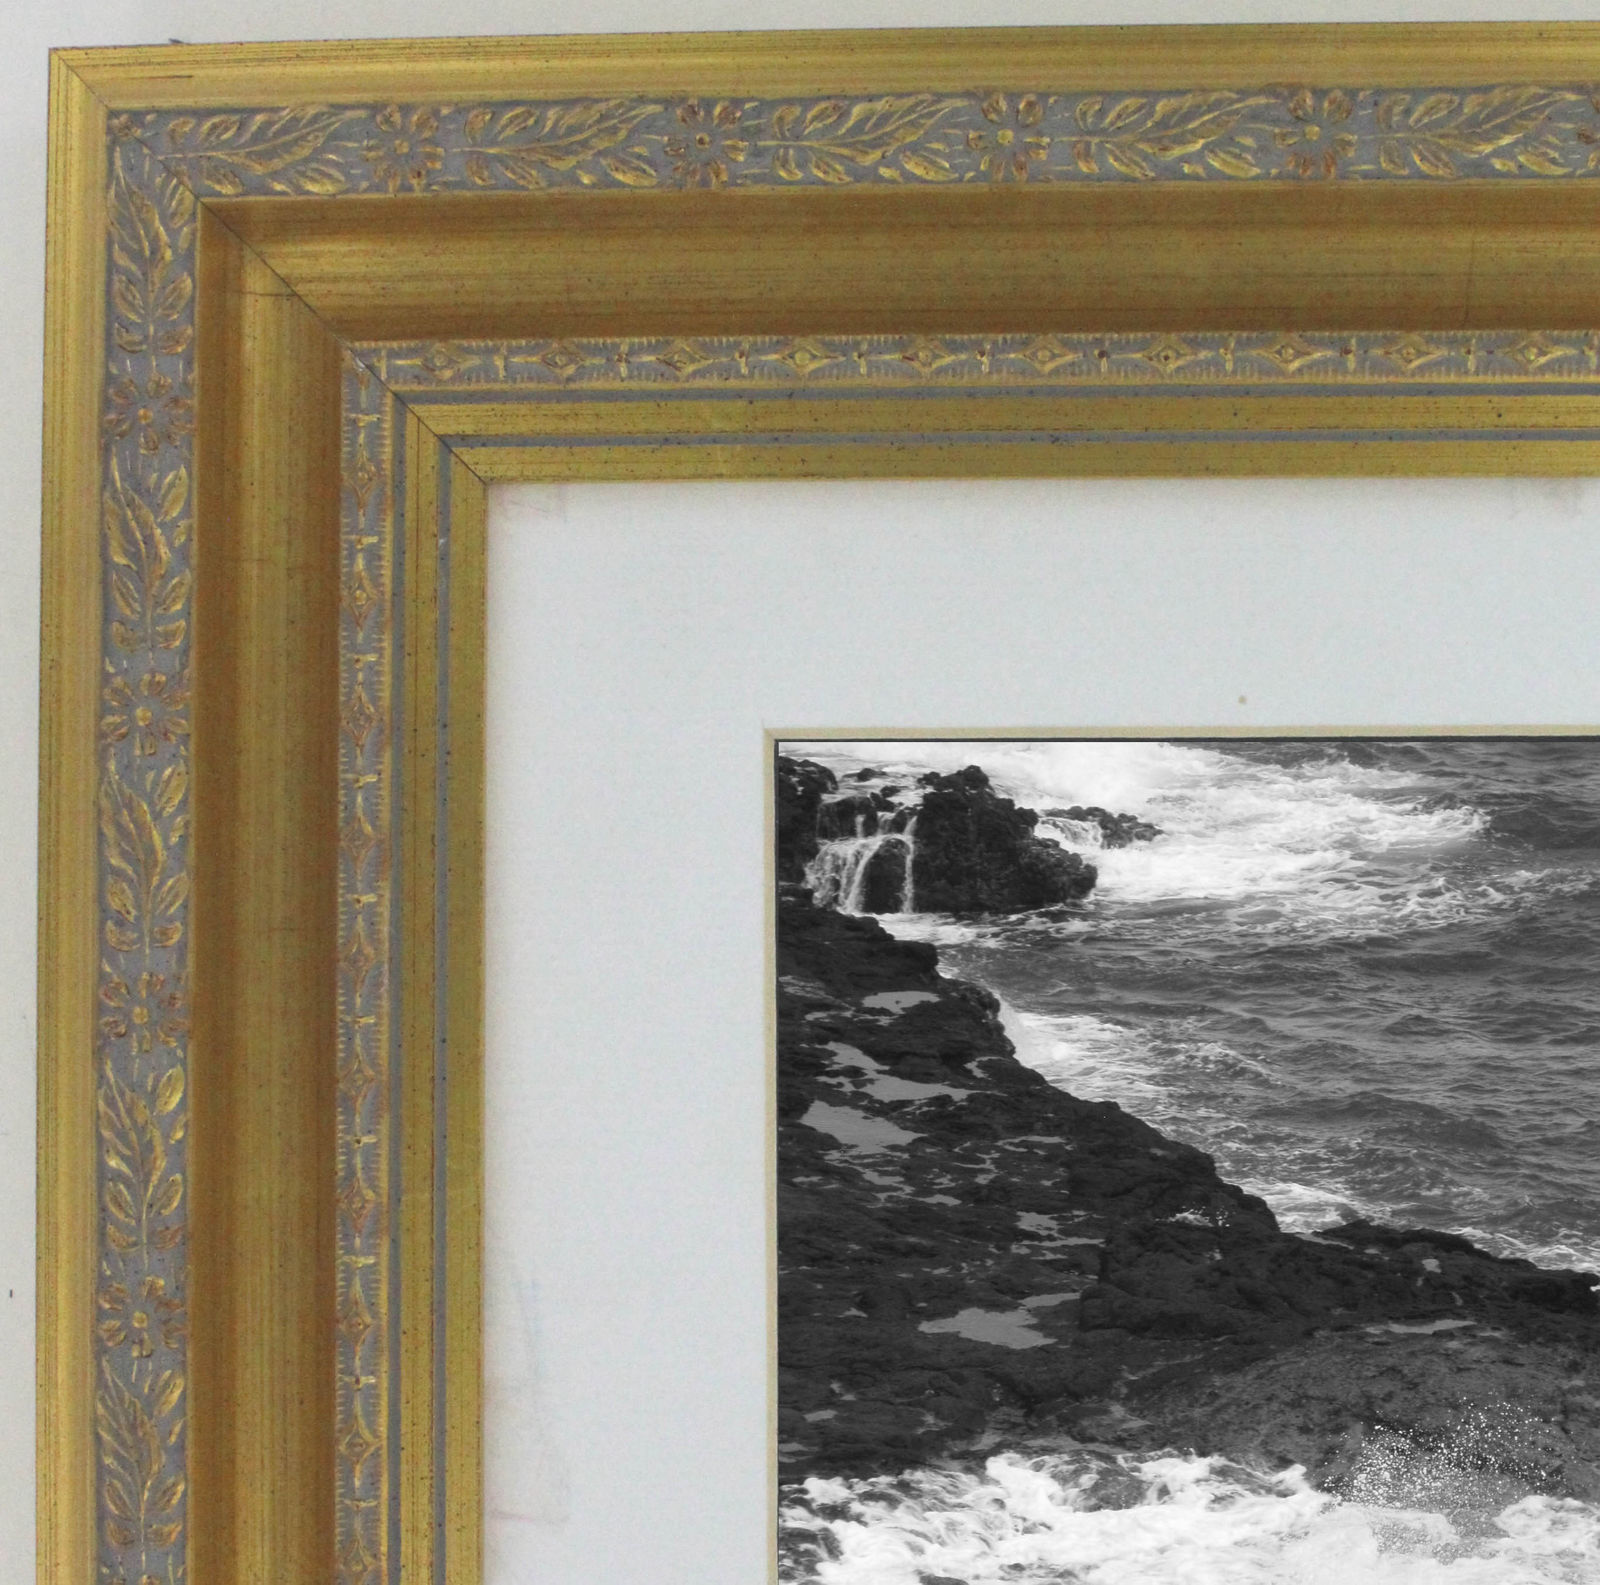 Ornate 2 Gold Wood 8x10 Wall Picture Frame White Mat 5x7 Opening